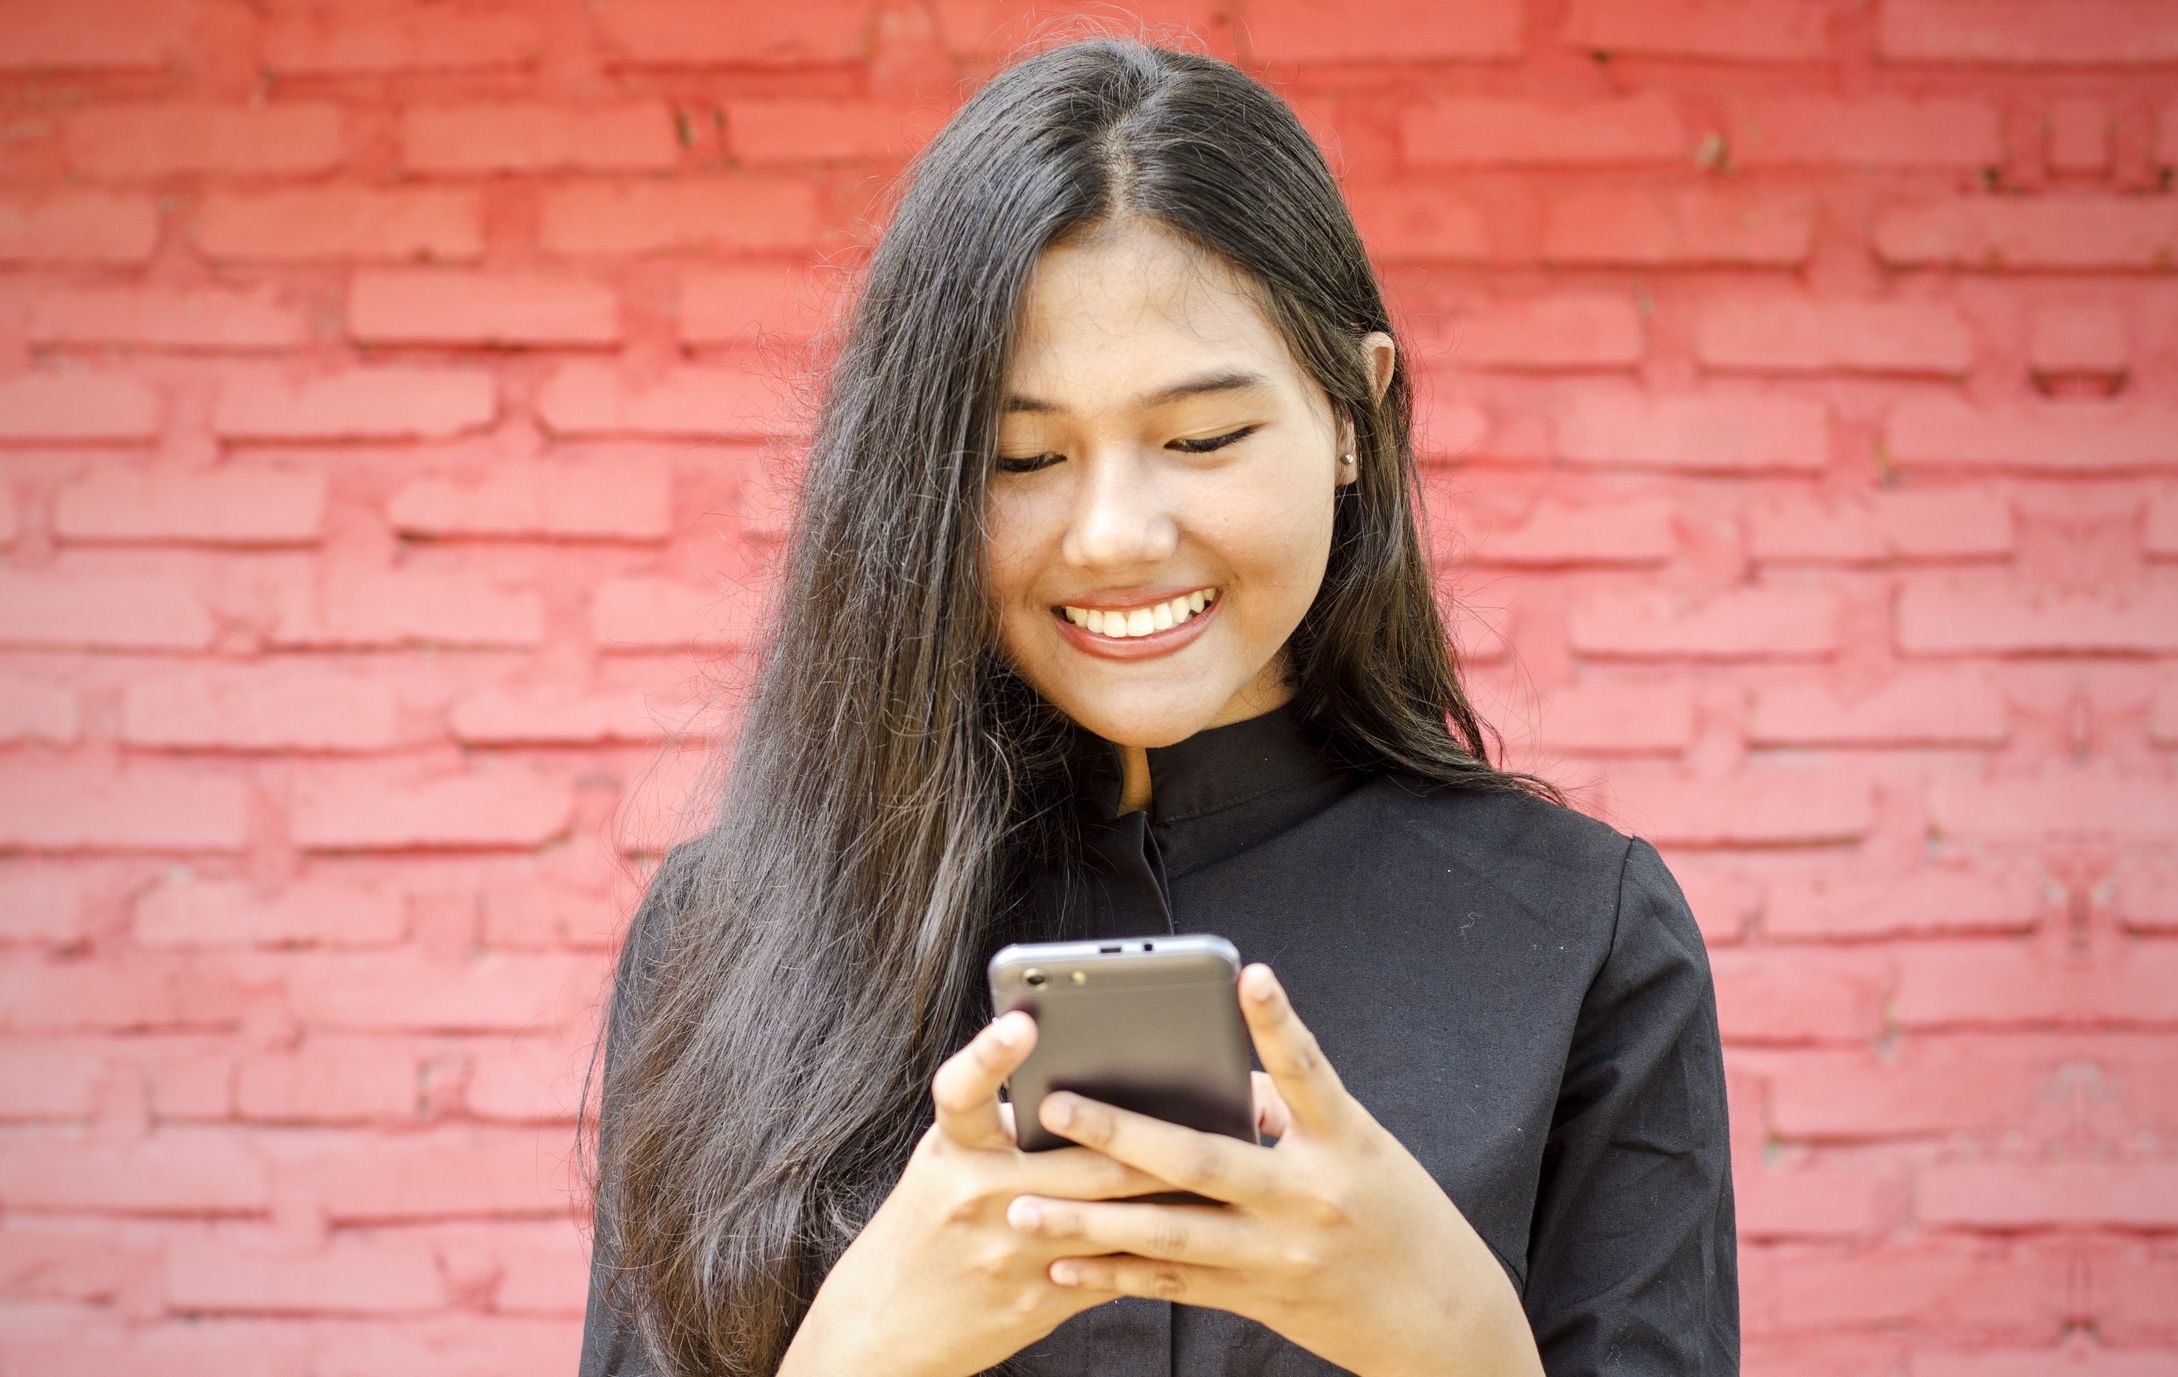 best dating apps for teens without download: